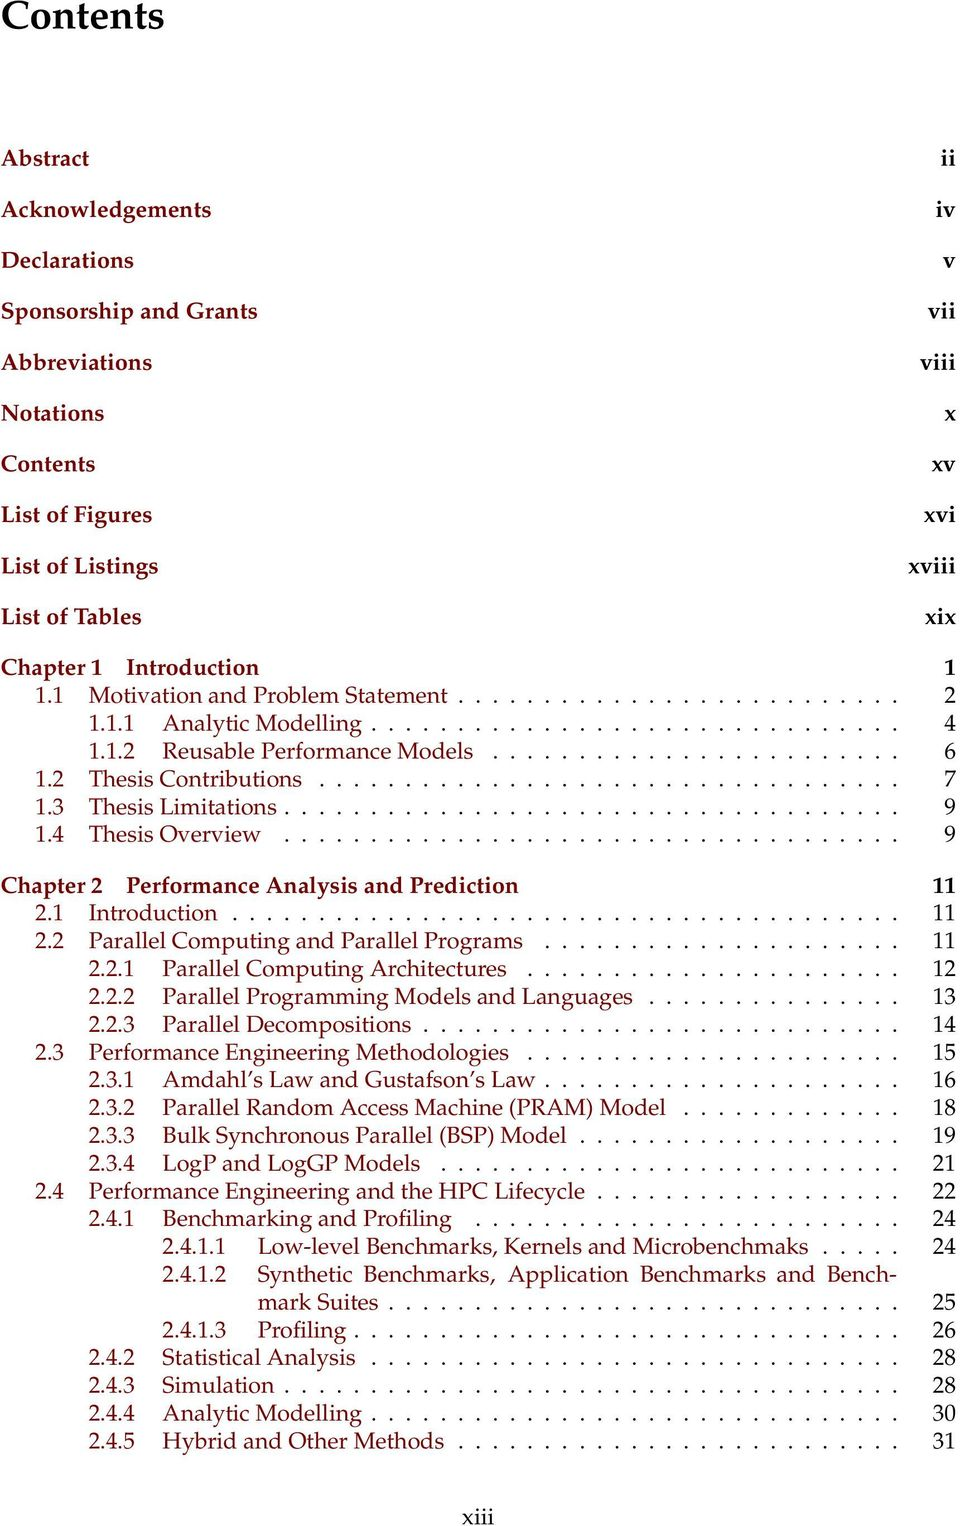 2 Thesis Contributions.................................. 7 1.3 Thesis Limitations.................................... 9 1.4 Thesis Overview.................................... 9 Chapter 2 Performance Analysis and Prediction 11 2.